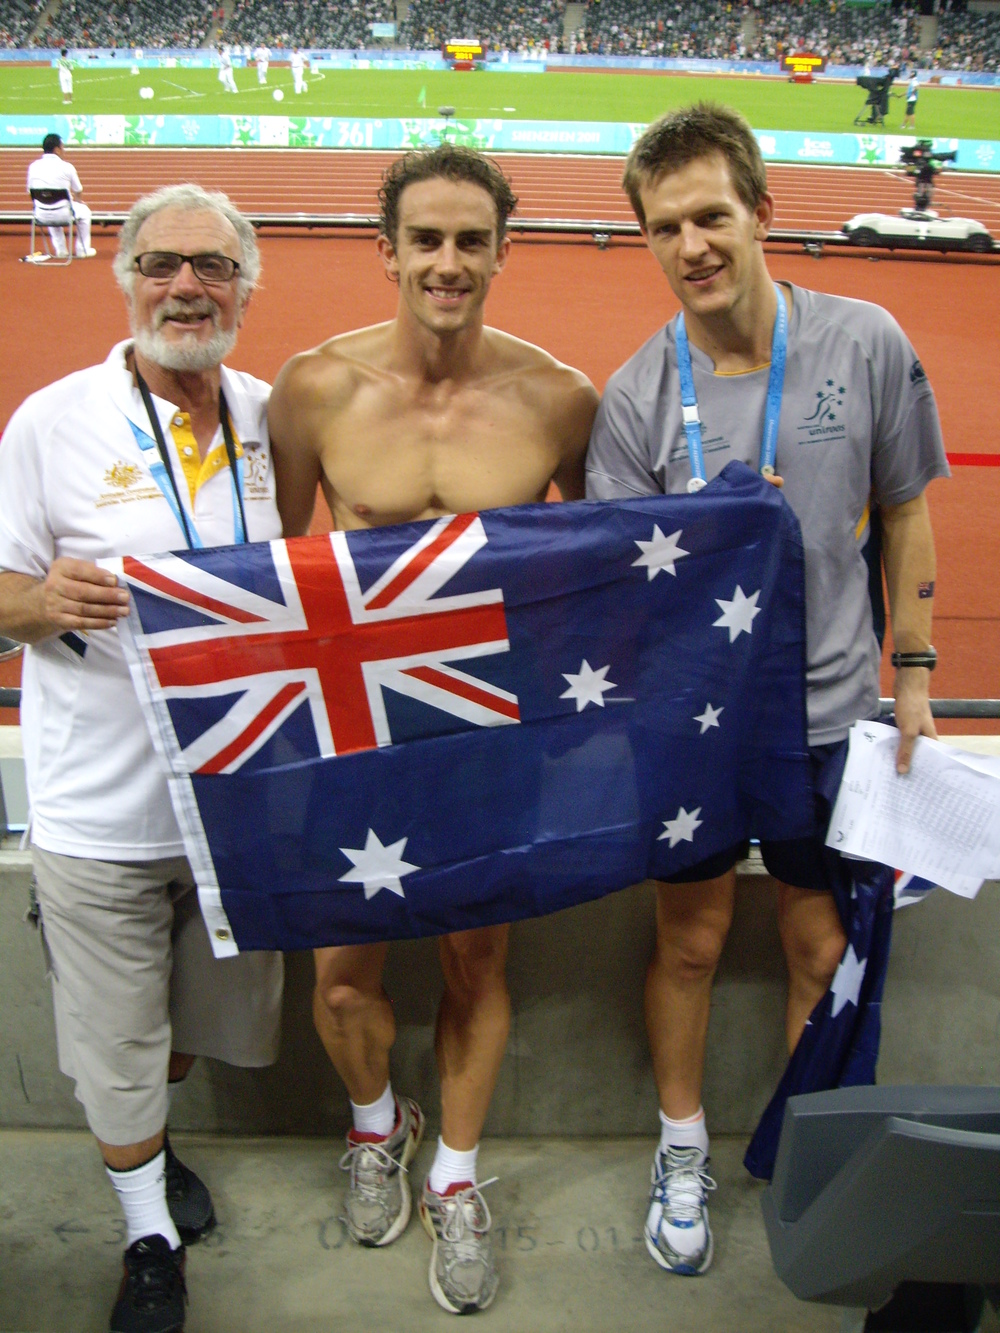 Aidan with 2 time Australian decathlon champ   ion  Steve Cain  at the 2011 World University Games in Shenzhen, China